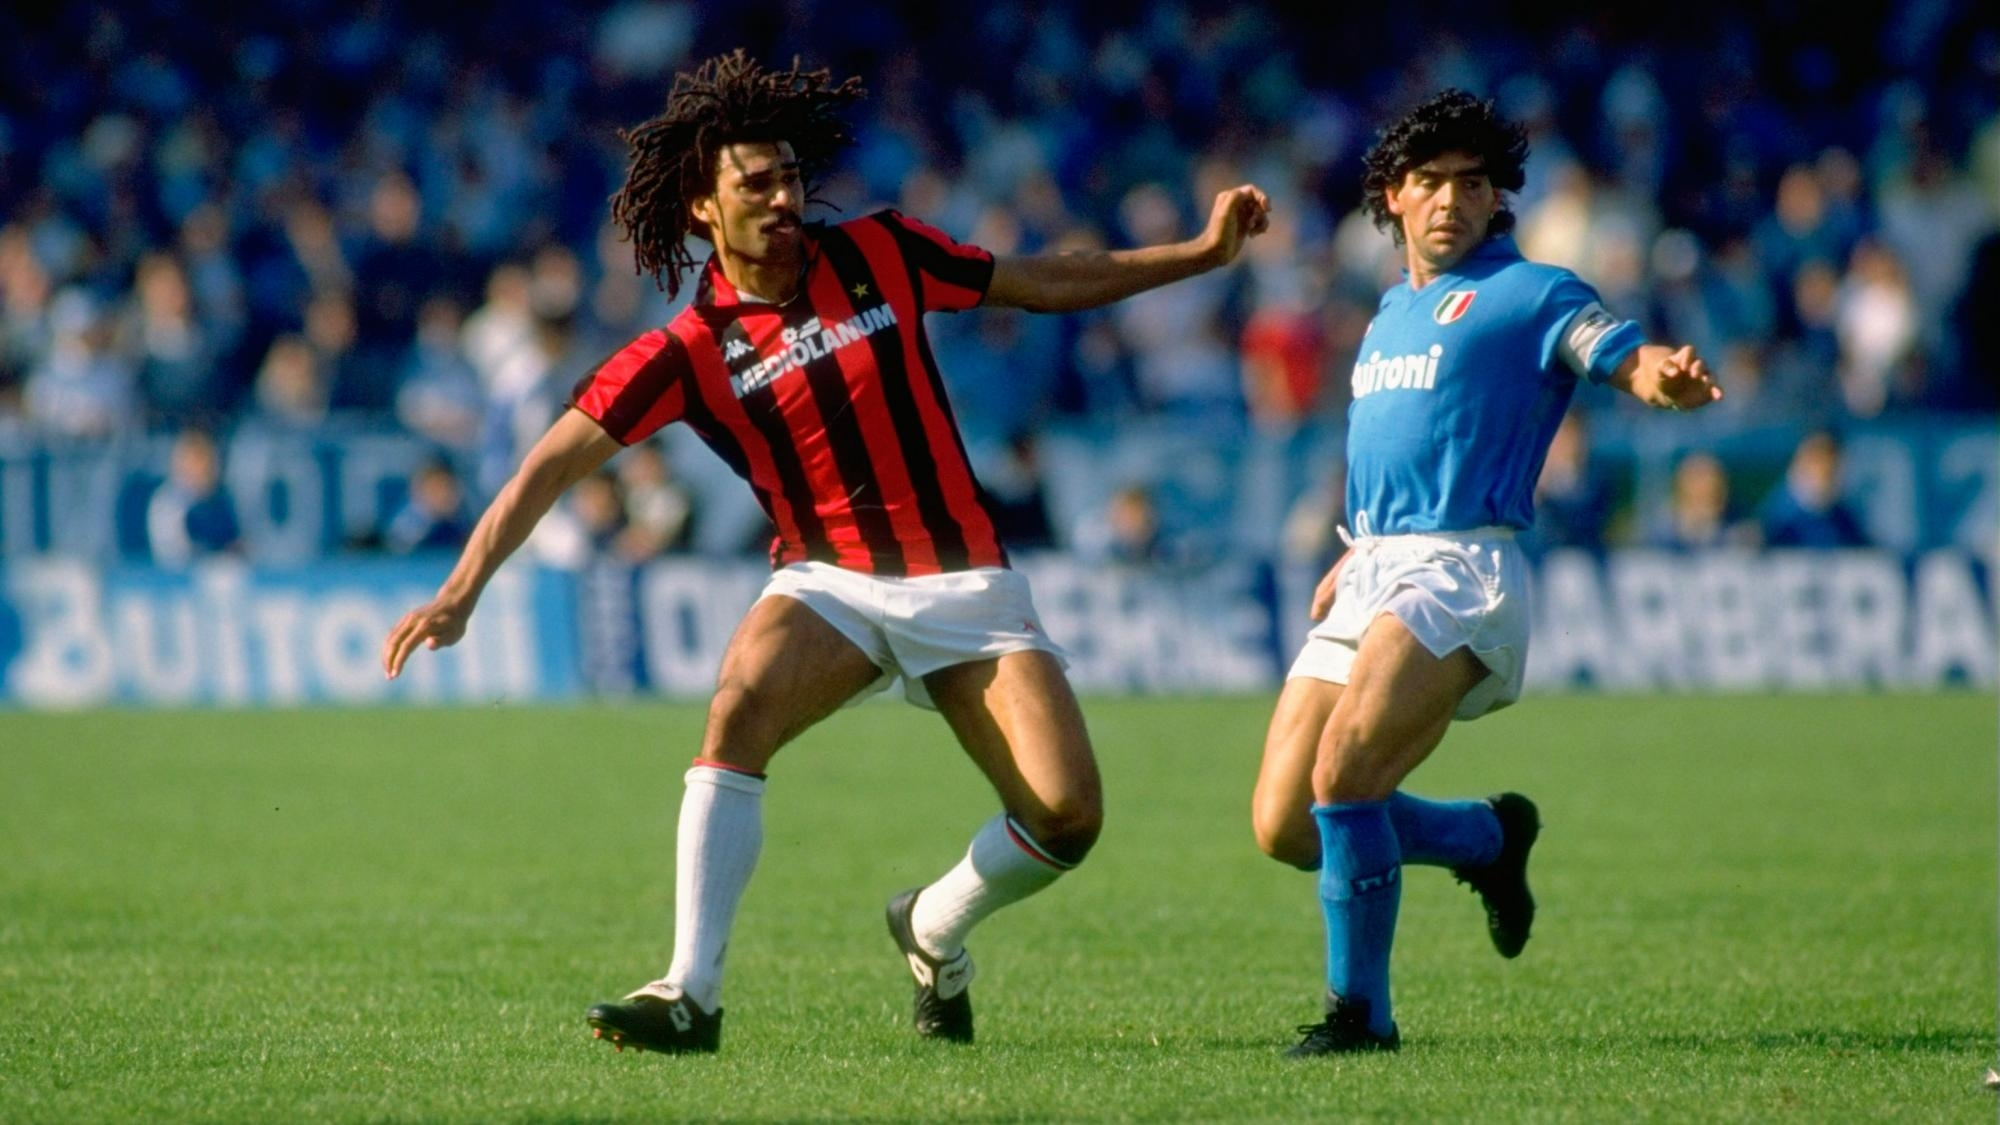 Ac milan vs napoly match images